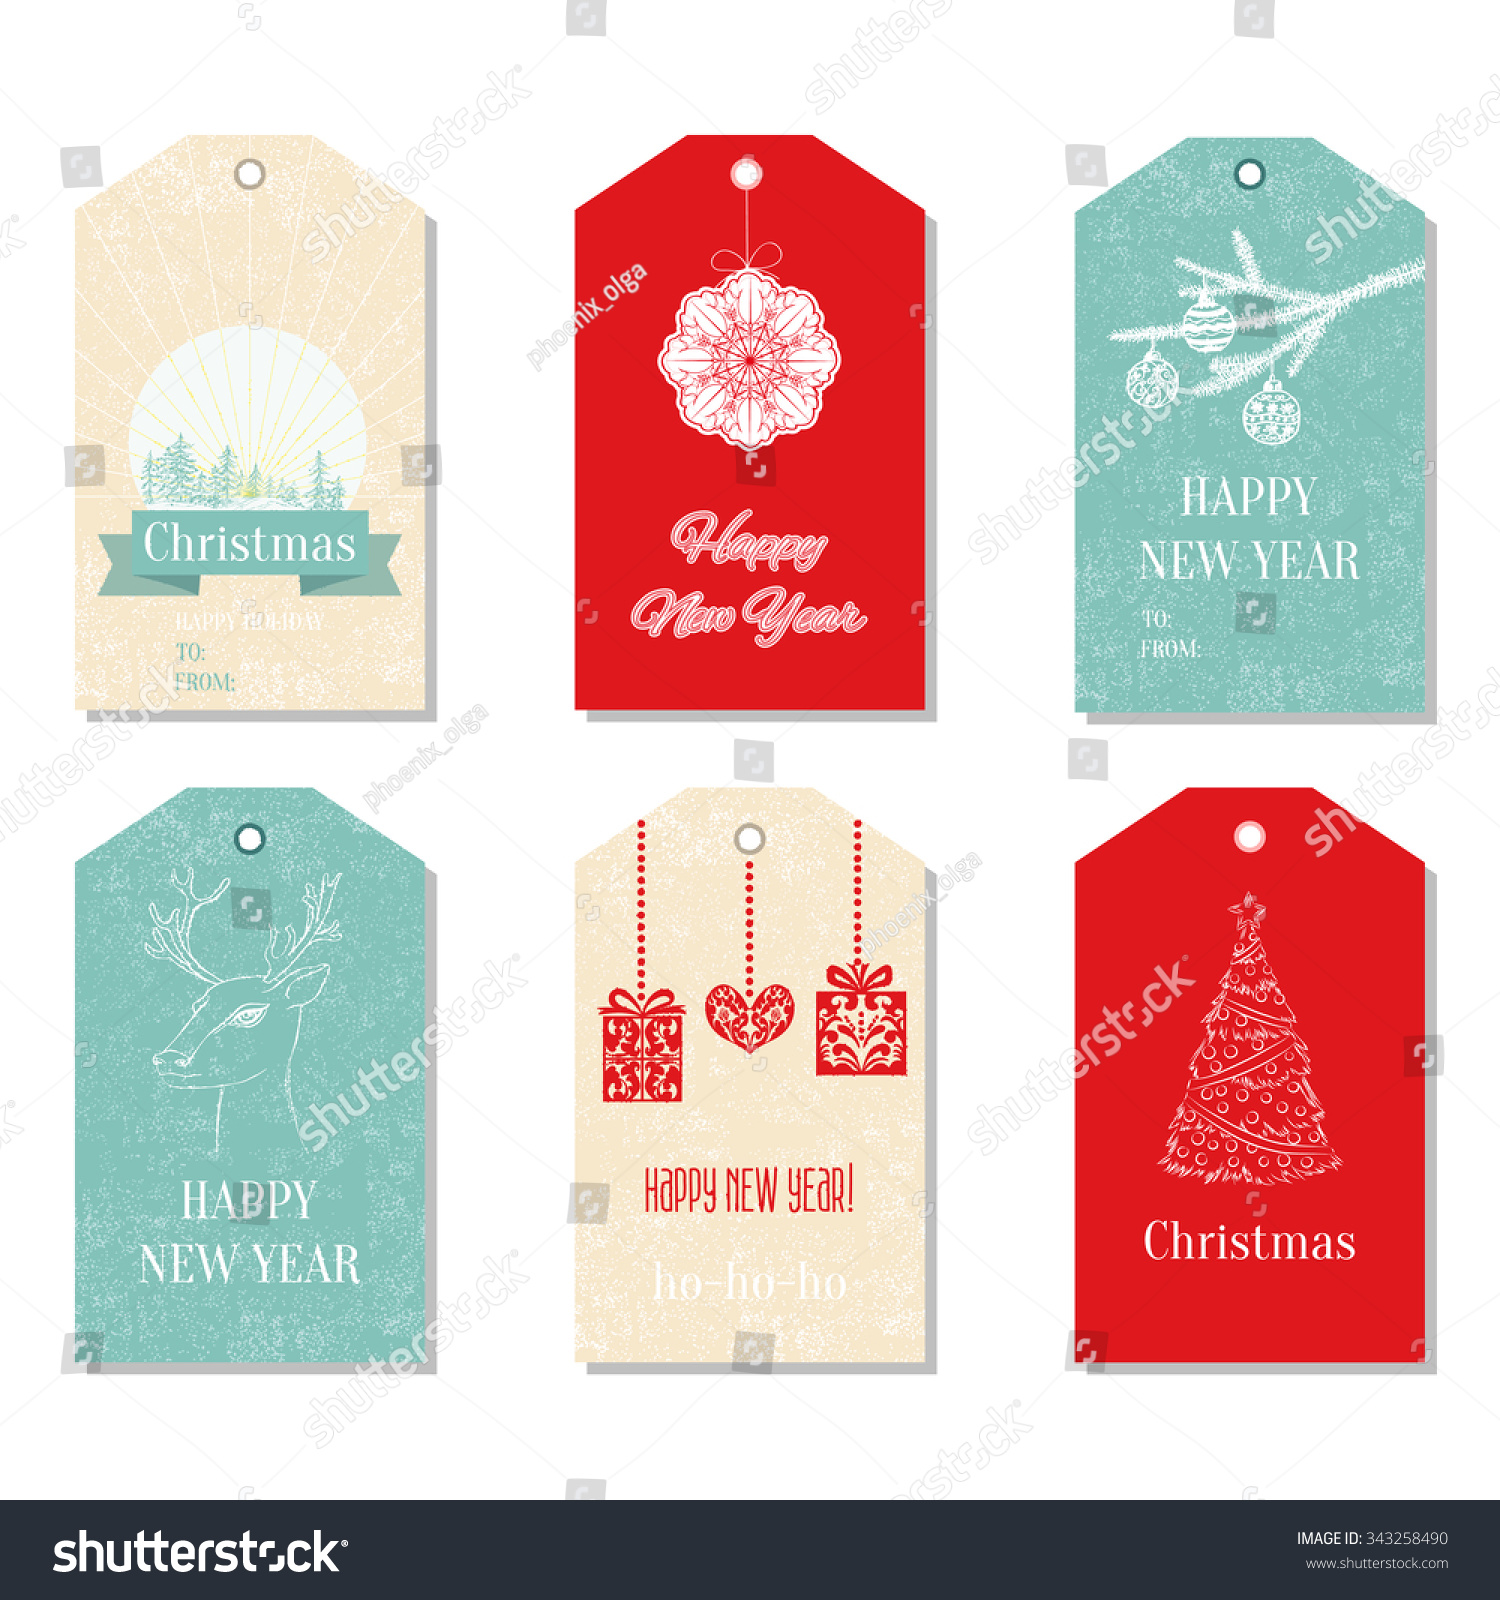 collection of cute ready to use 6 merry christmas and new year card templates